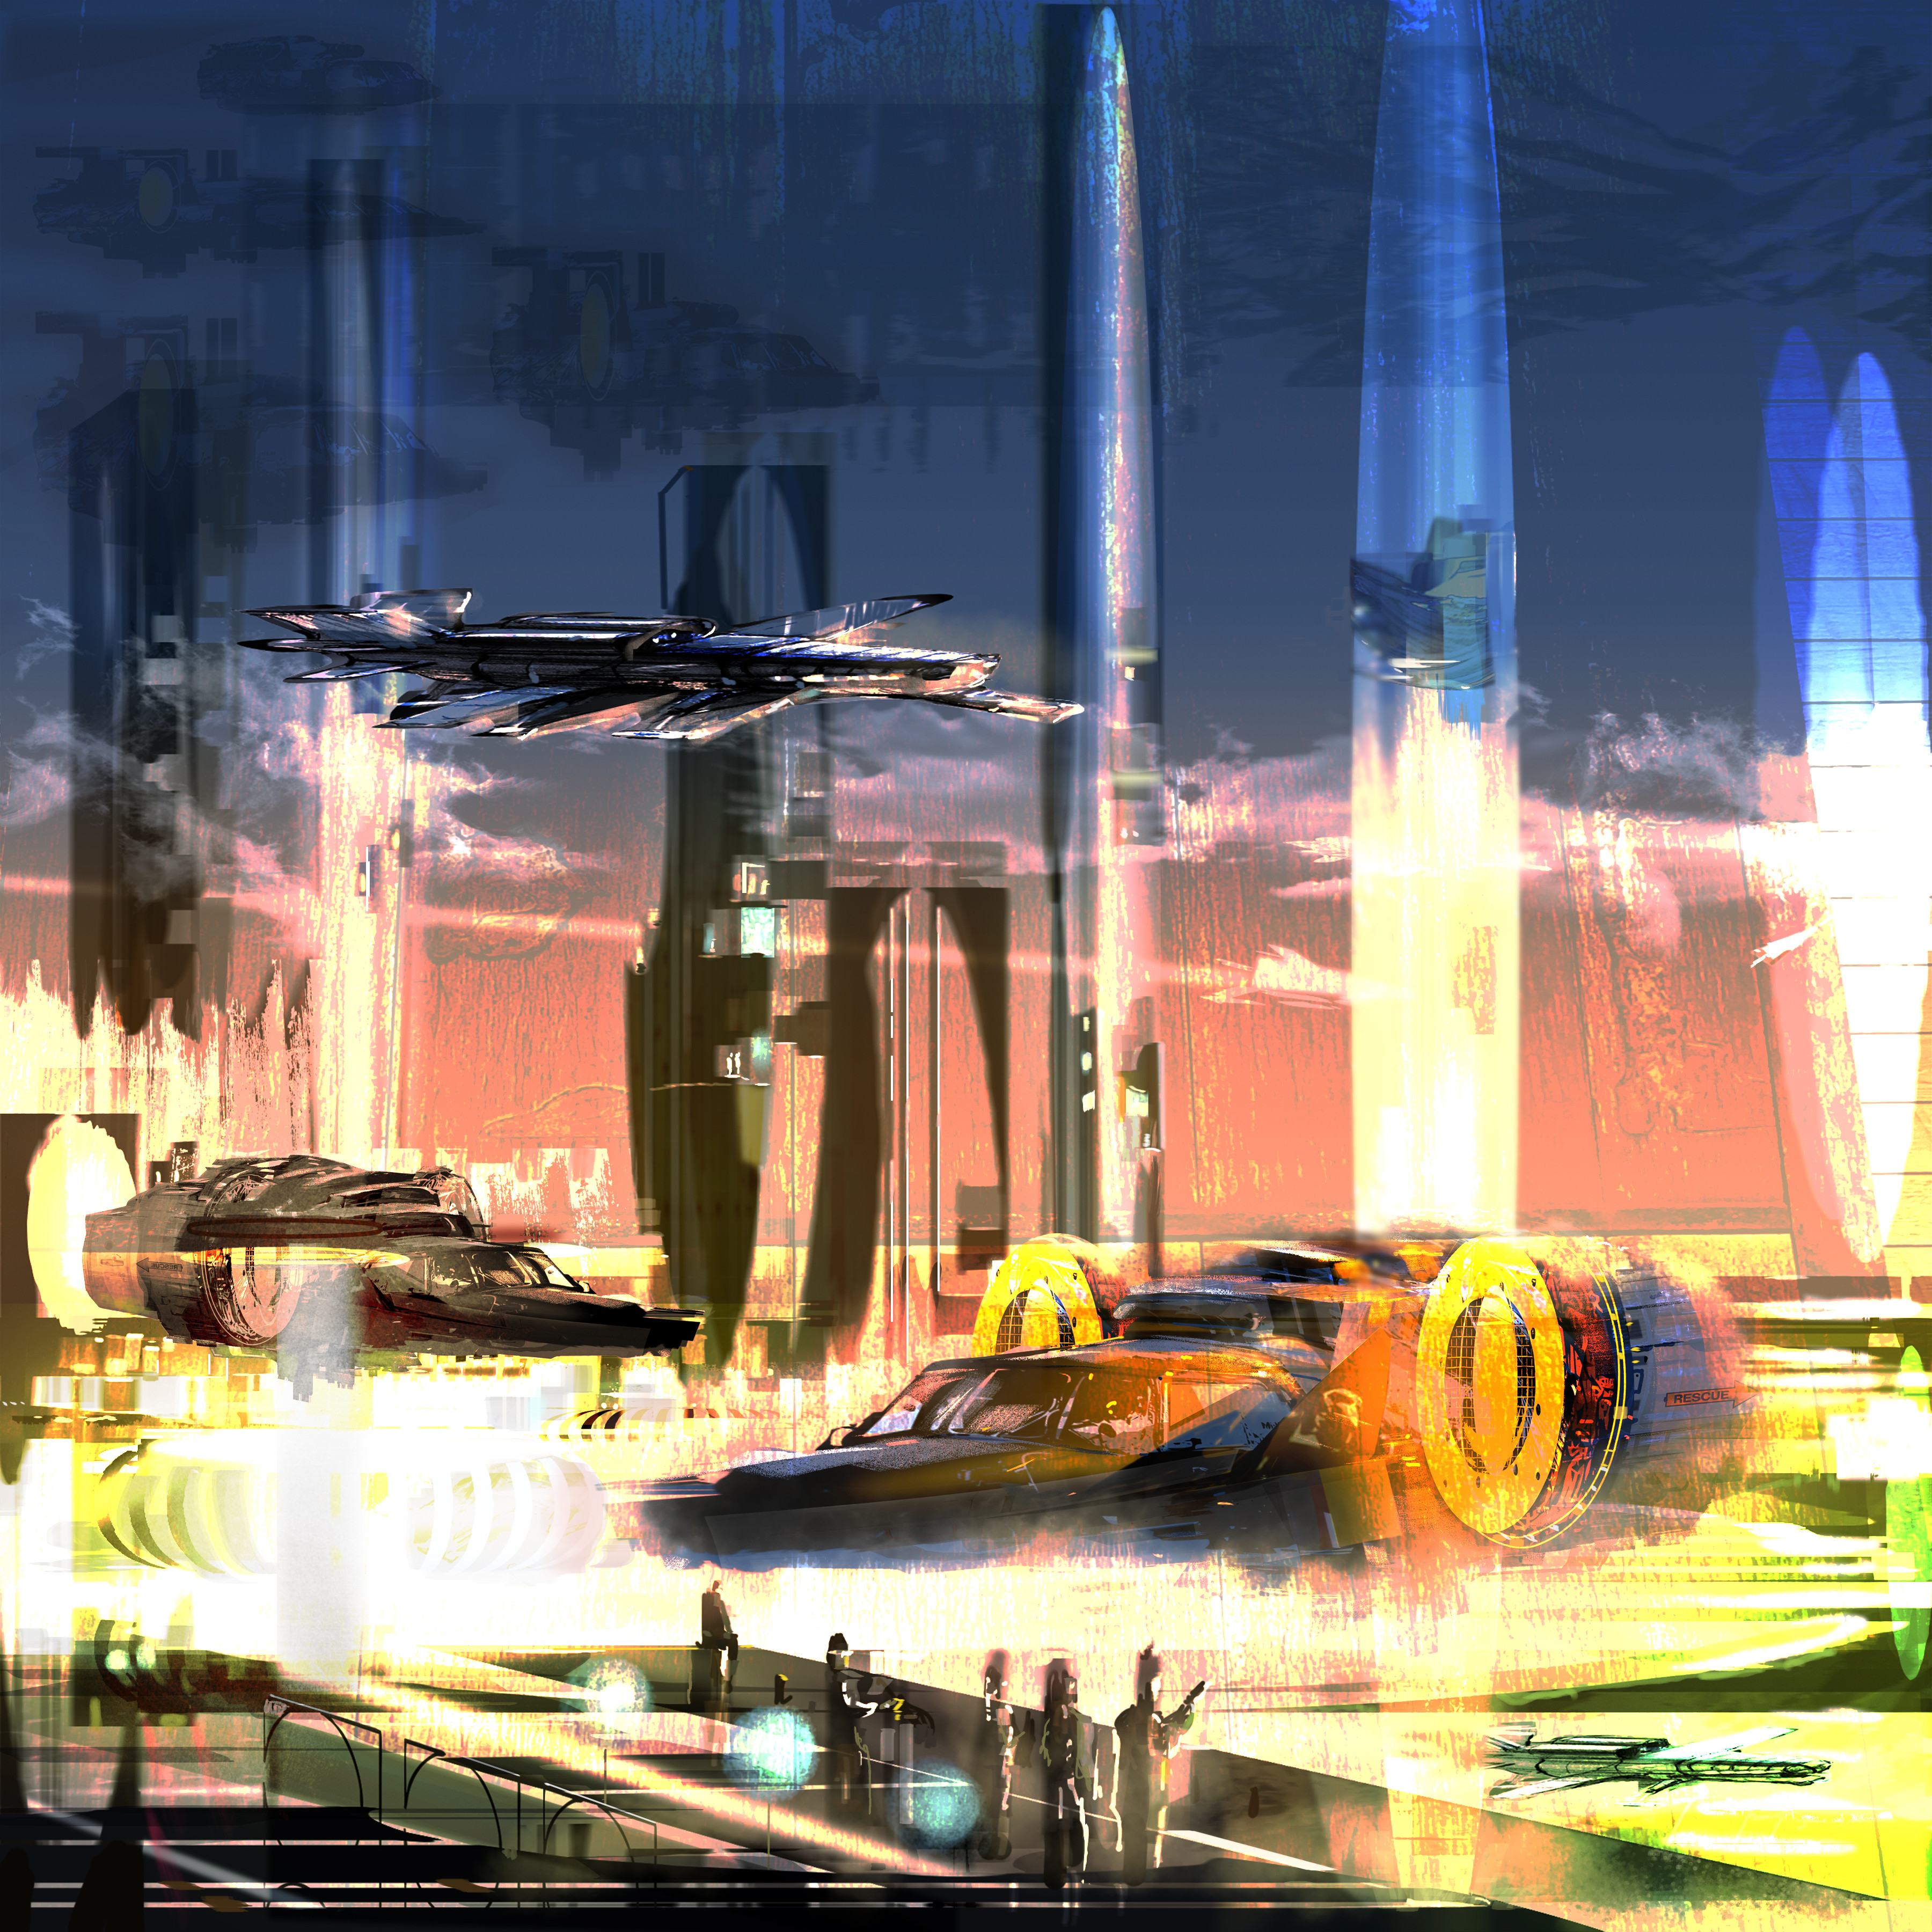 quick paint sketch for sci-fi scene.